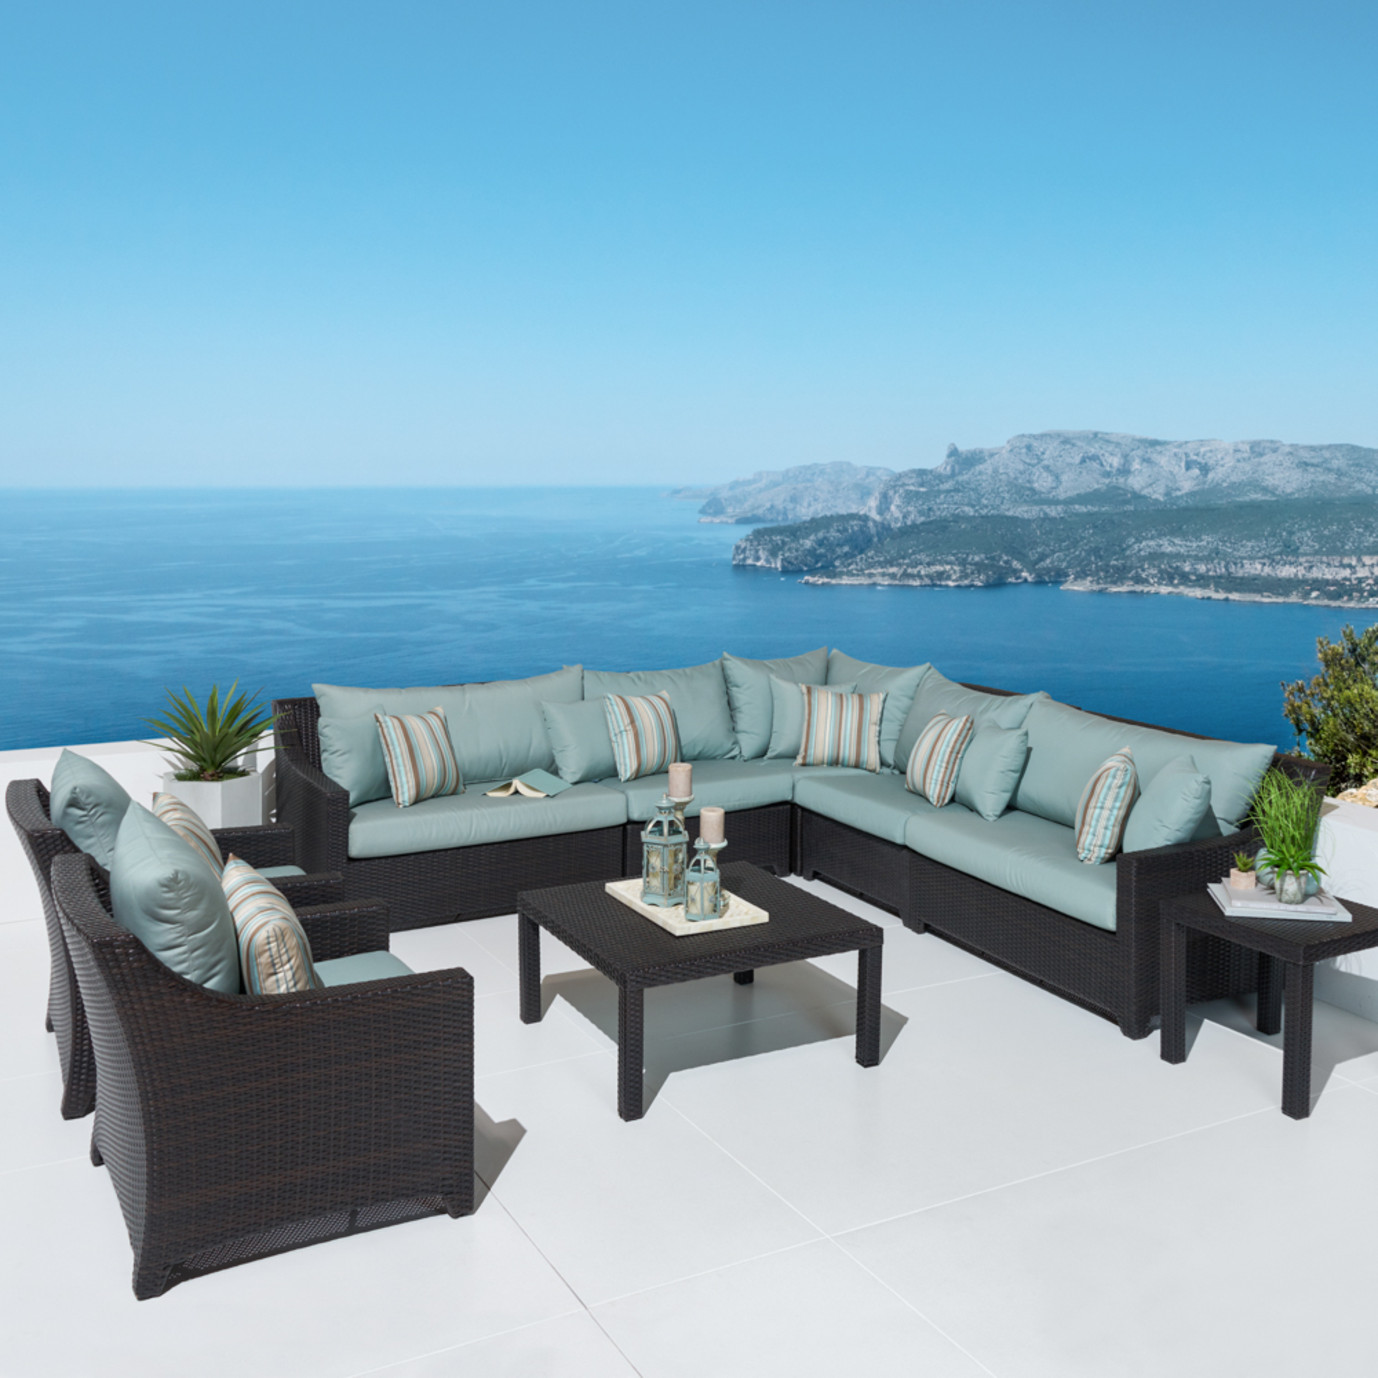 Deco™ 9pc Sectional and Club Set - Bliss Blue